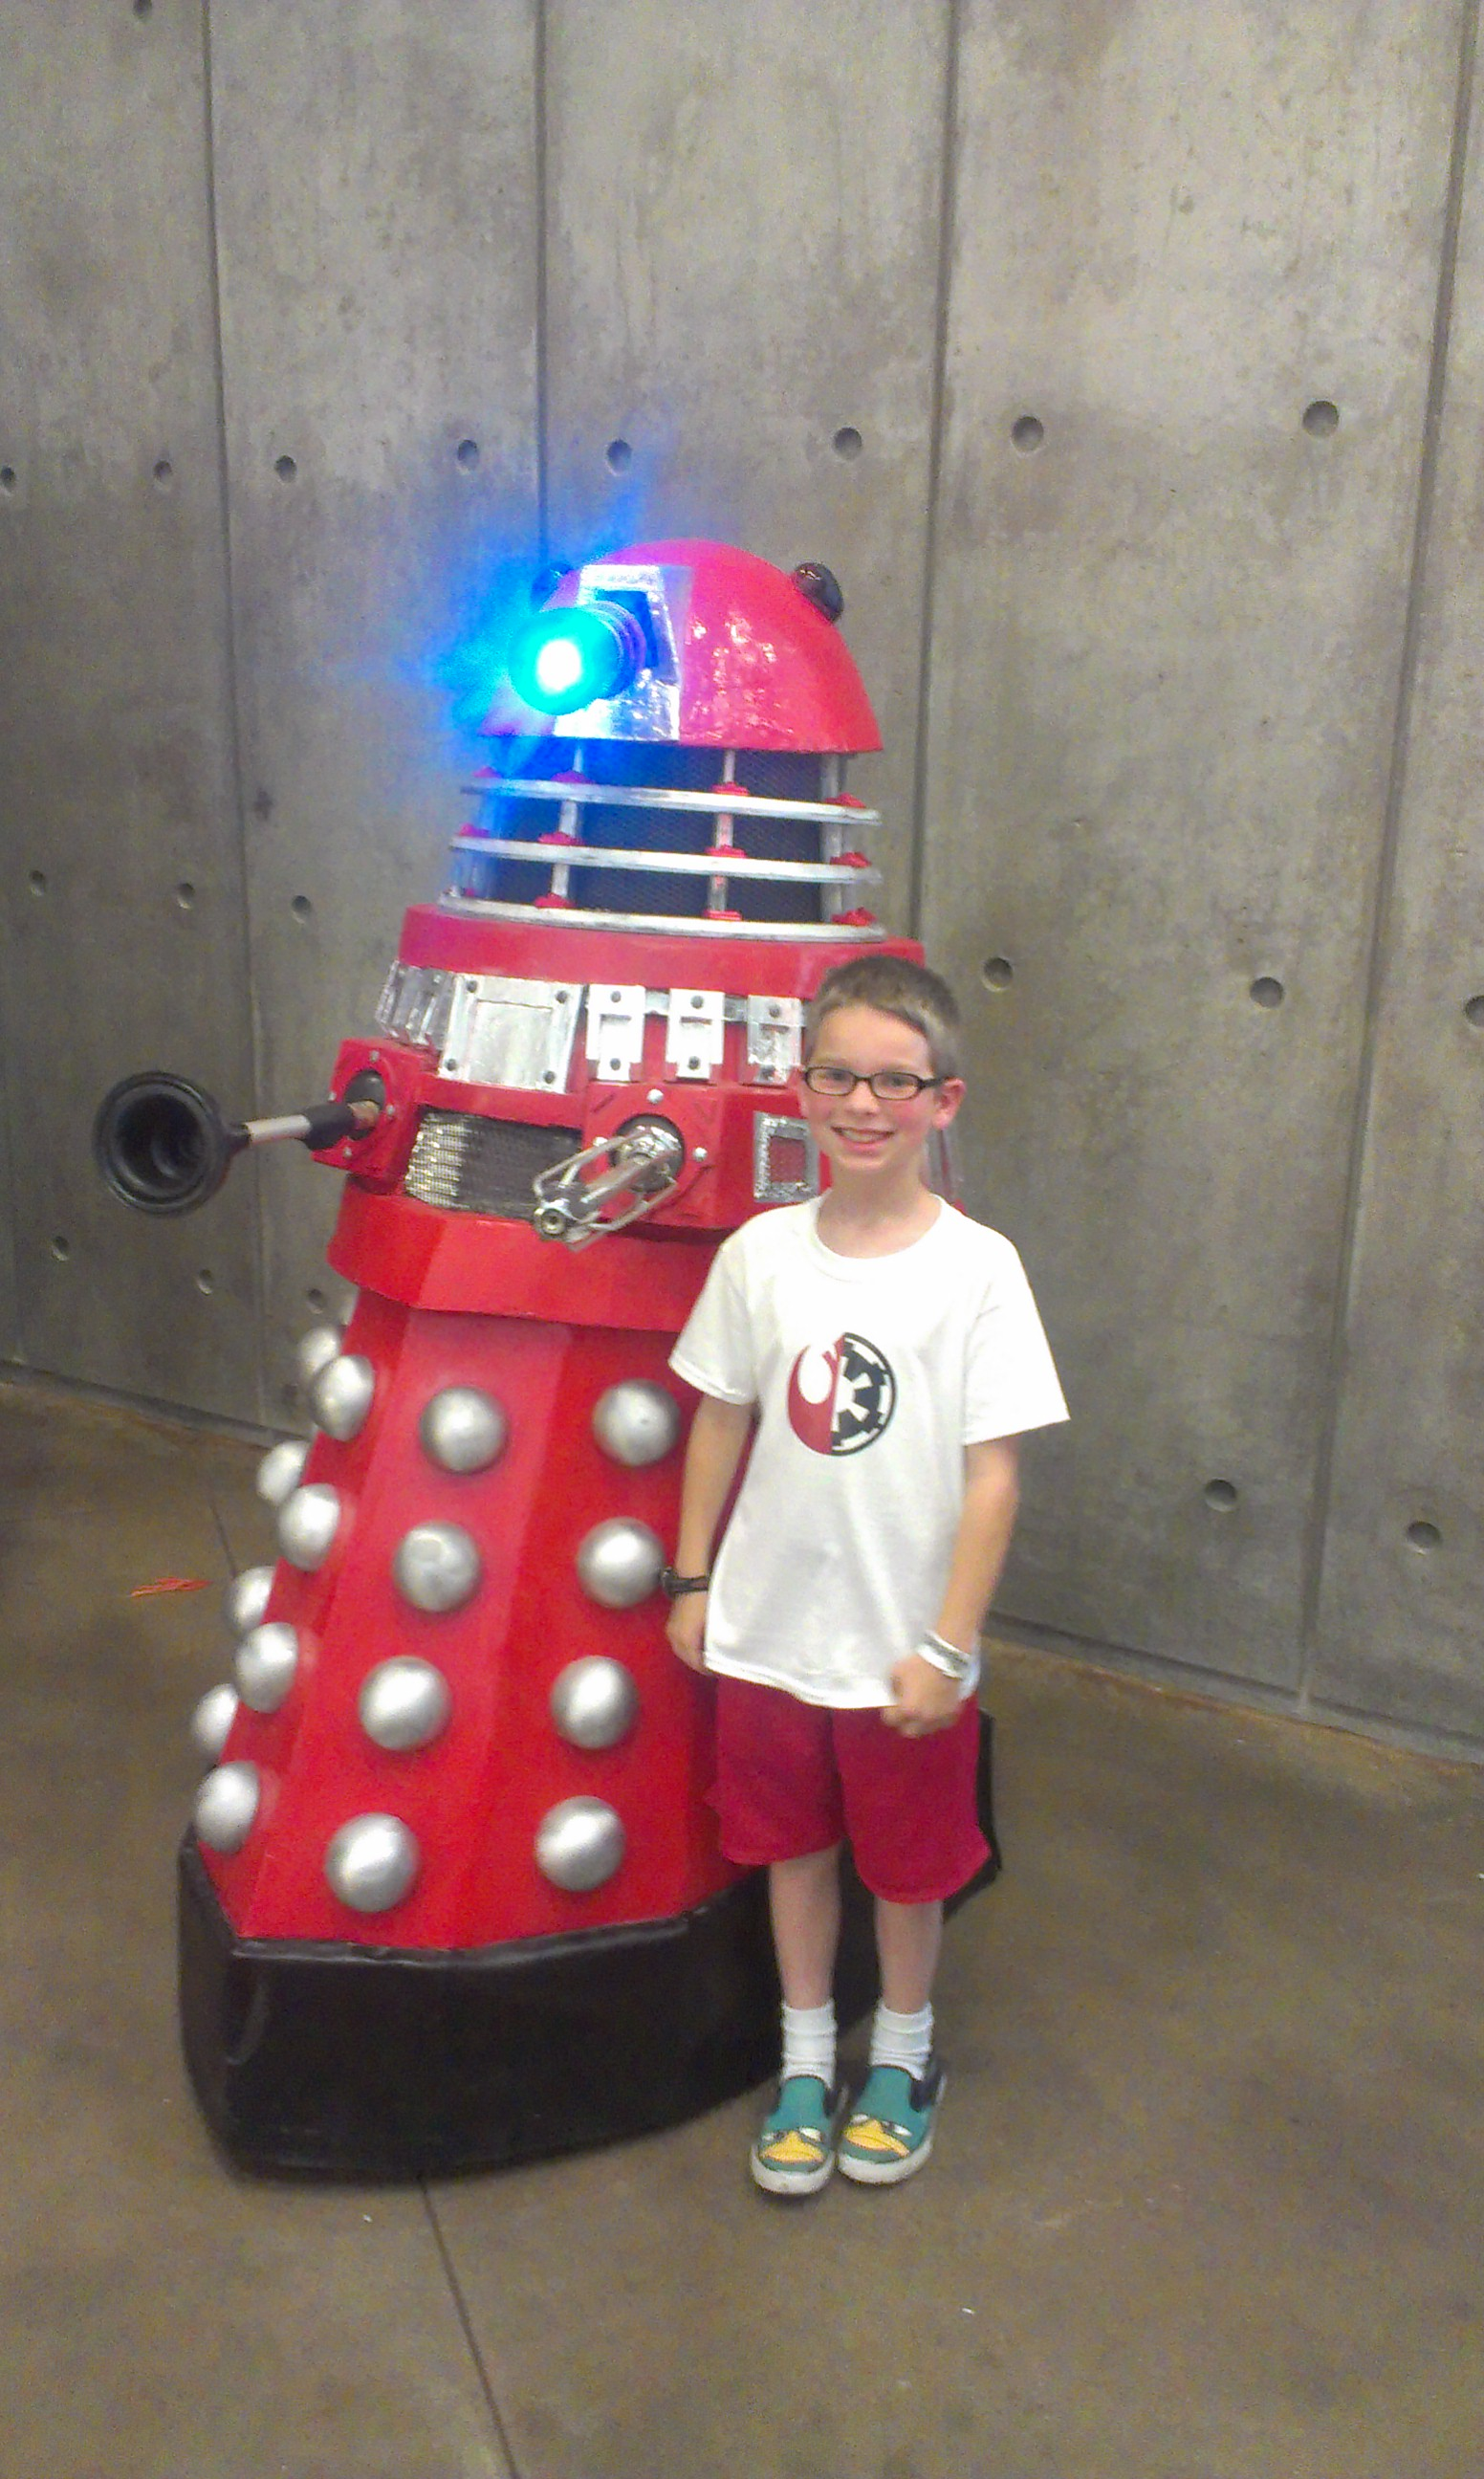 This Dalek moves its head and appendages.